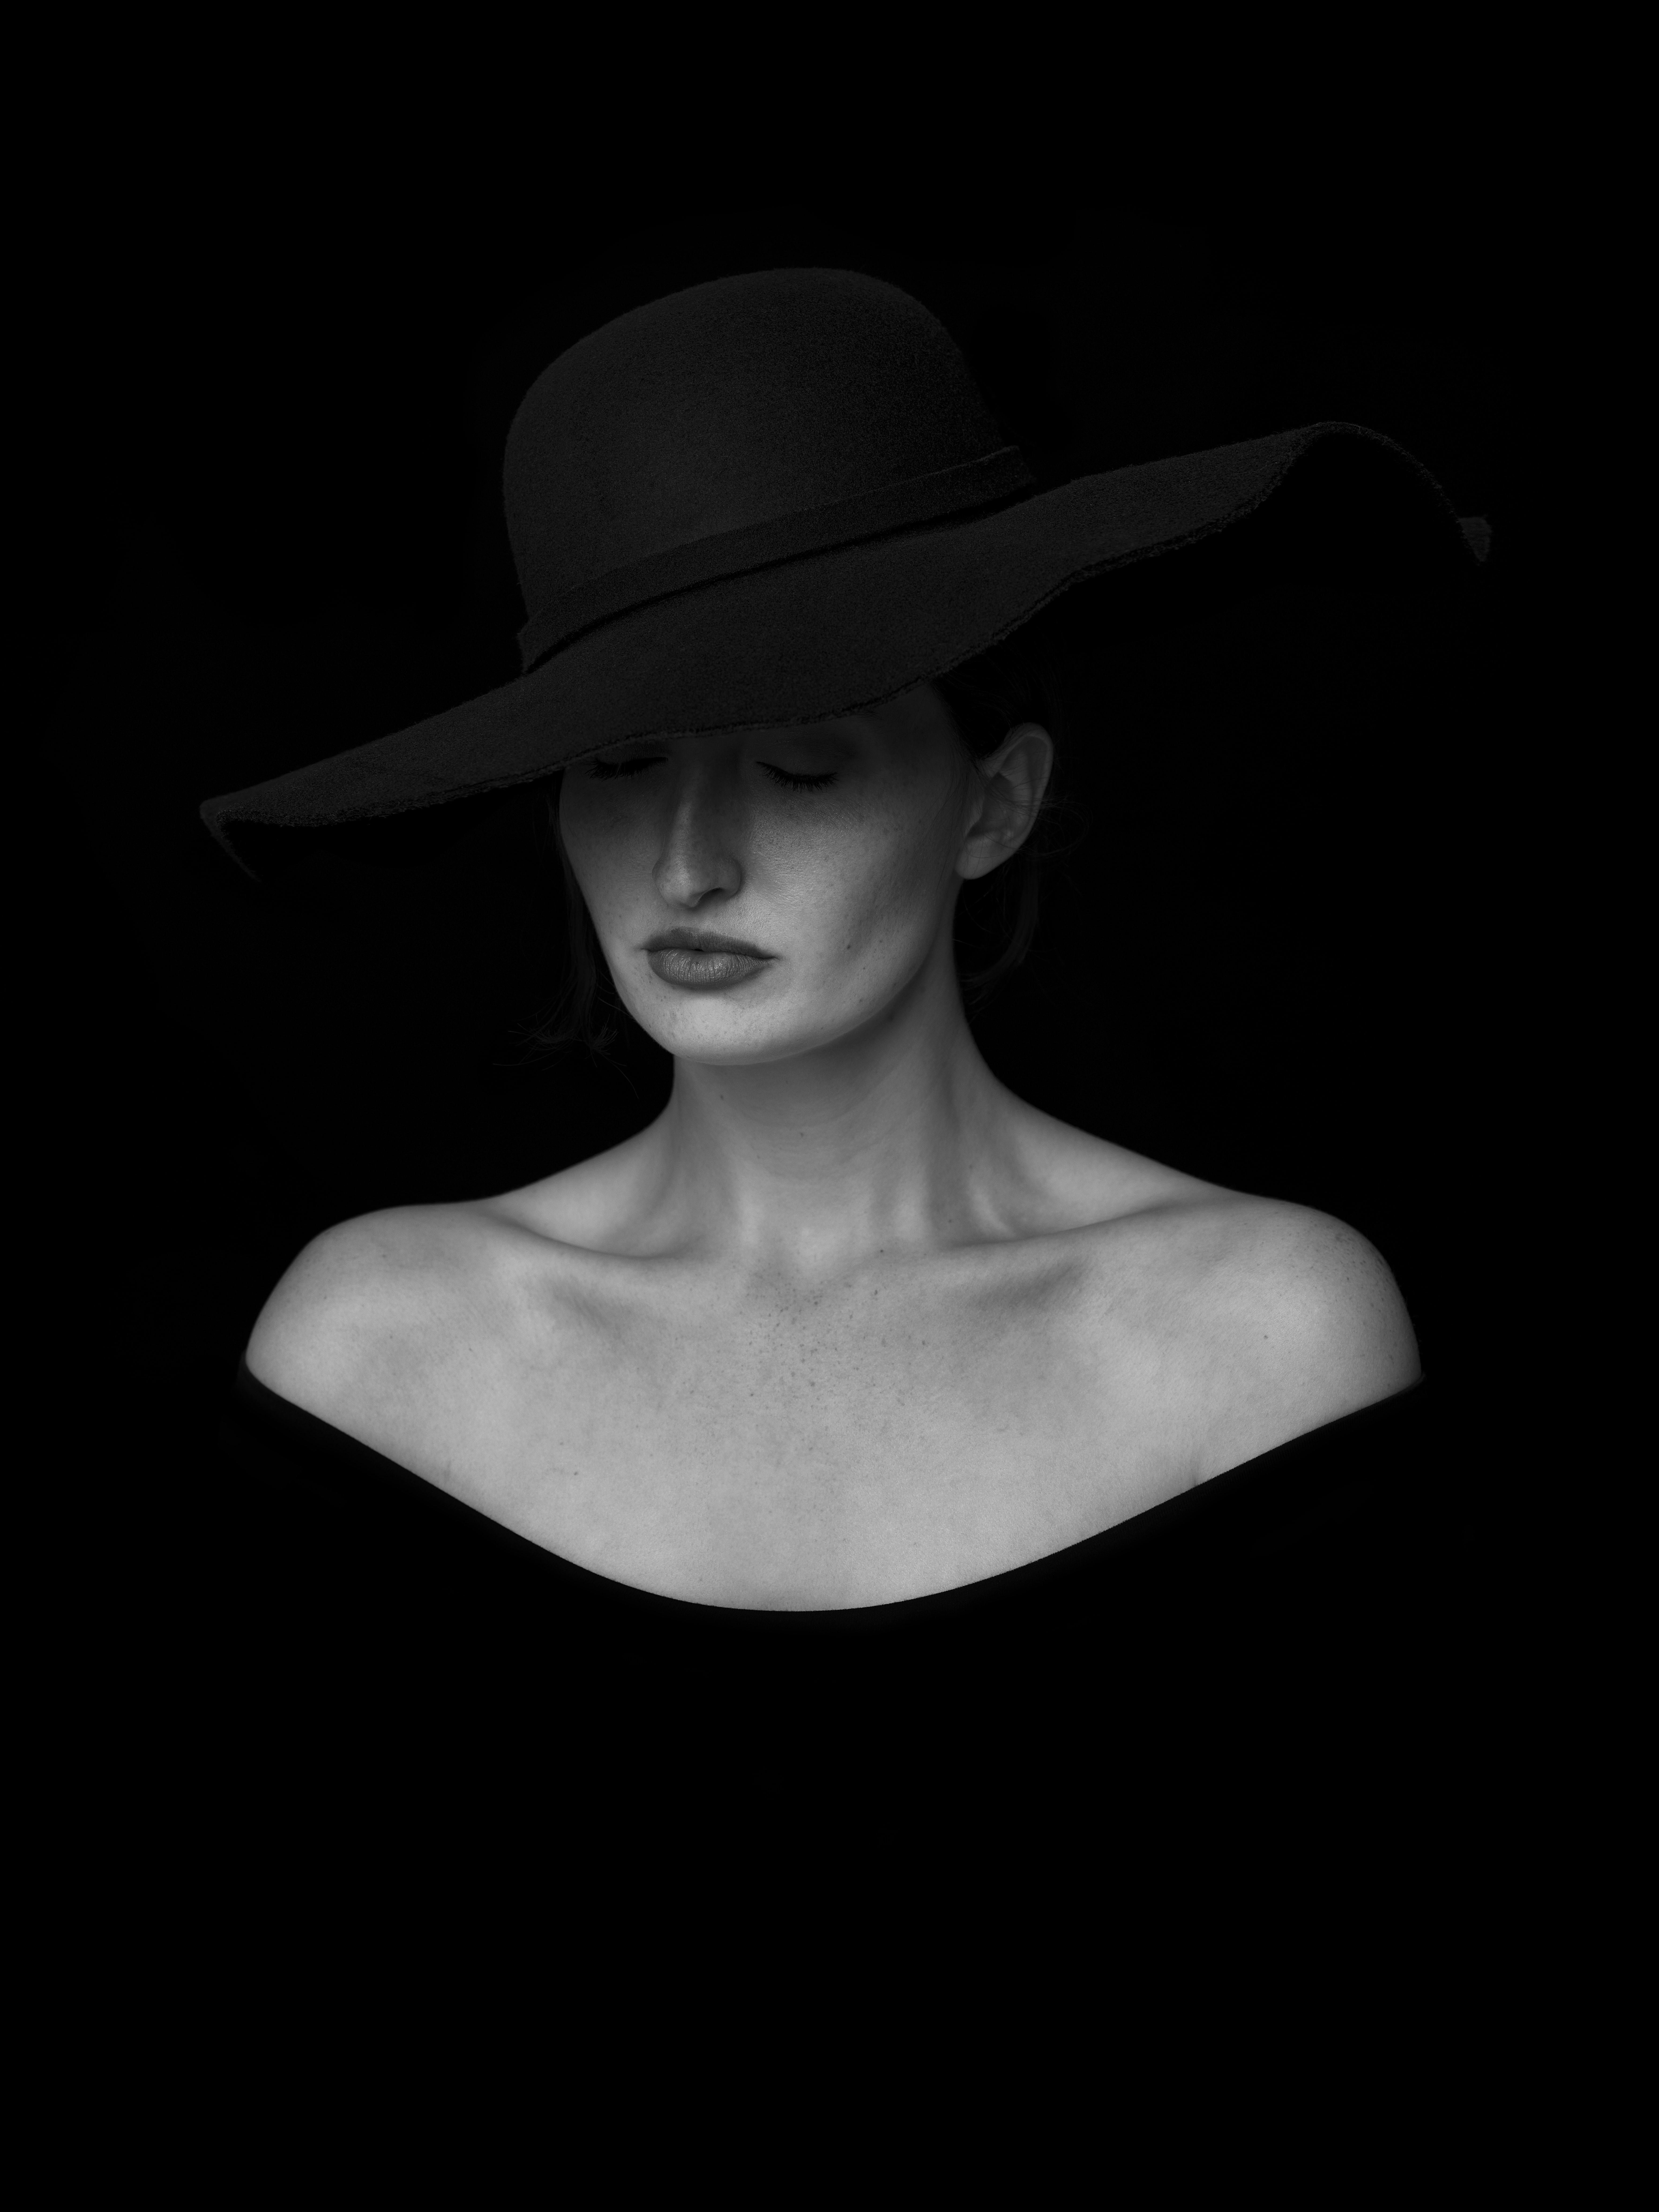 woman in black hat